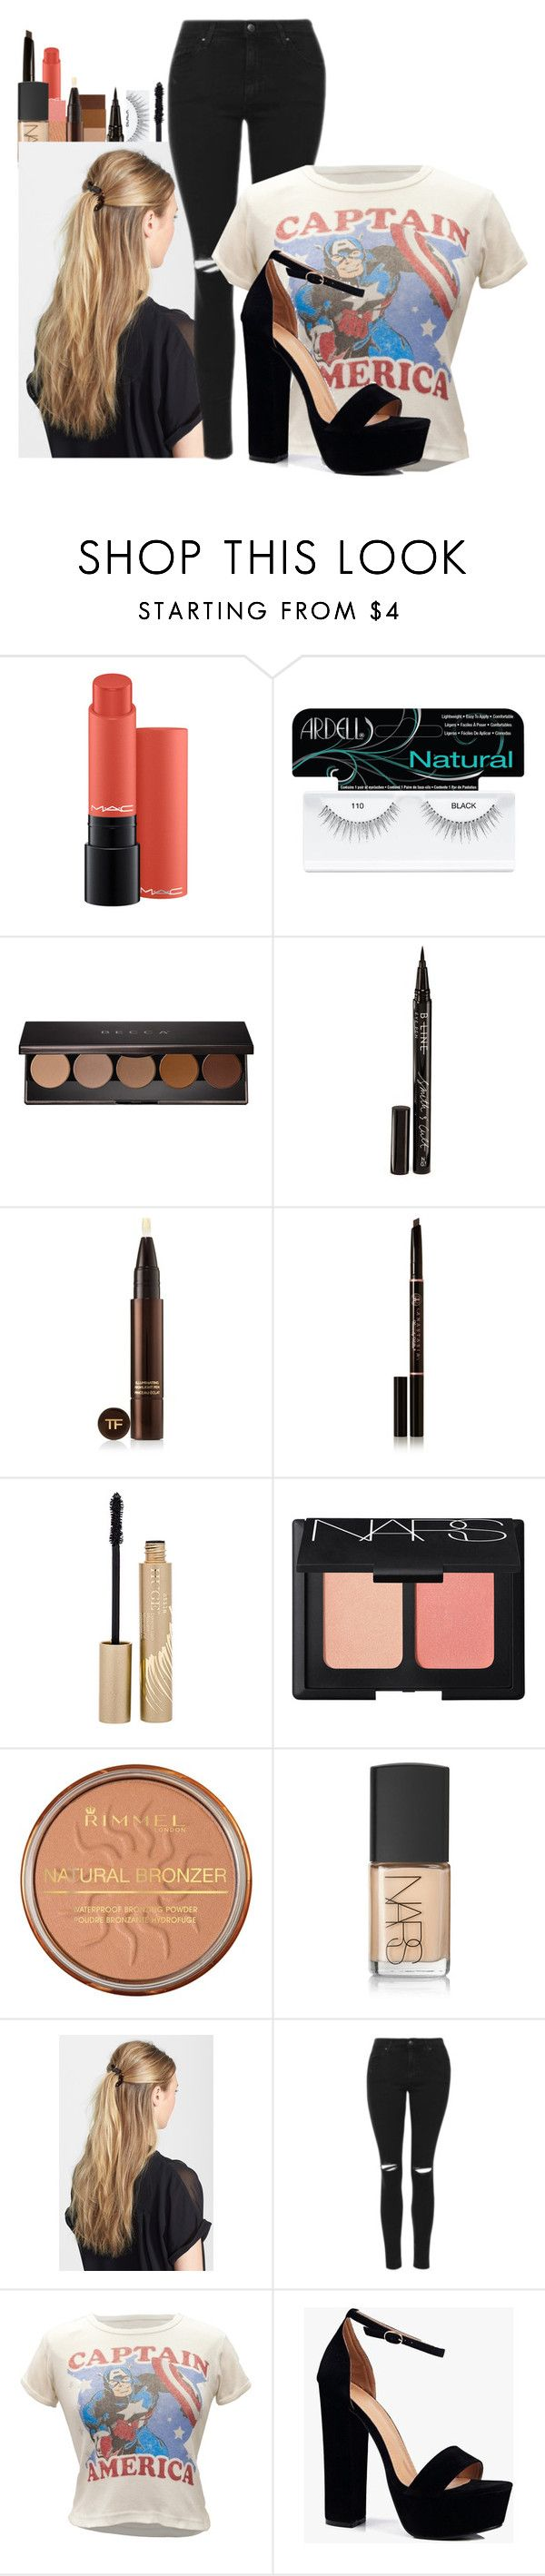 """Untitled #983"" by cheyleexox ❤ liked on Polyvore featuring Ardell, Becca, Smith & Cult, Tom Ford, Anastasia Beverly Hills, Stila, NARS Cosmetics, Rimmel, France Luxe and Topshop"